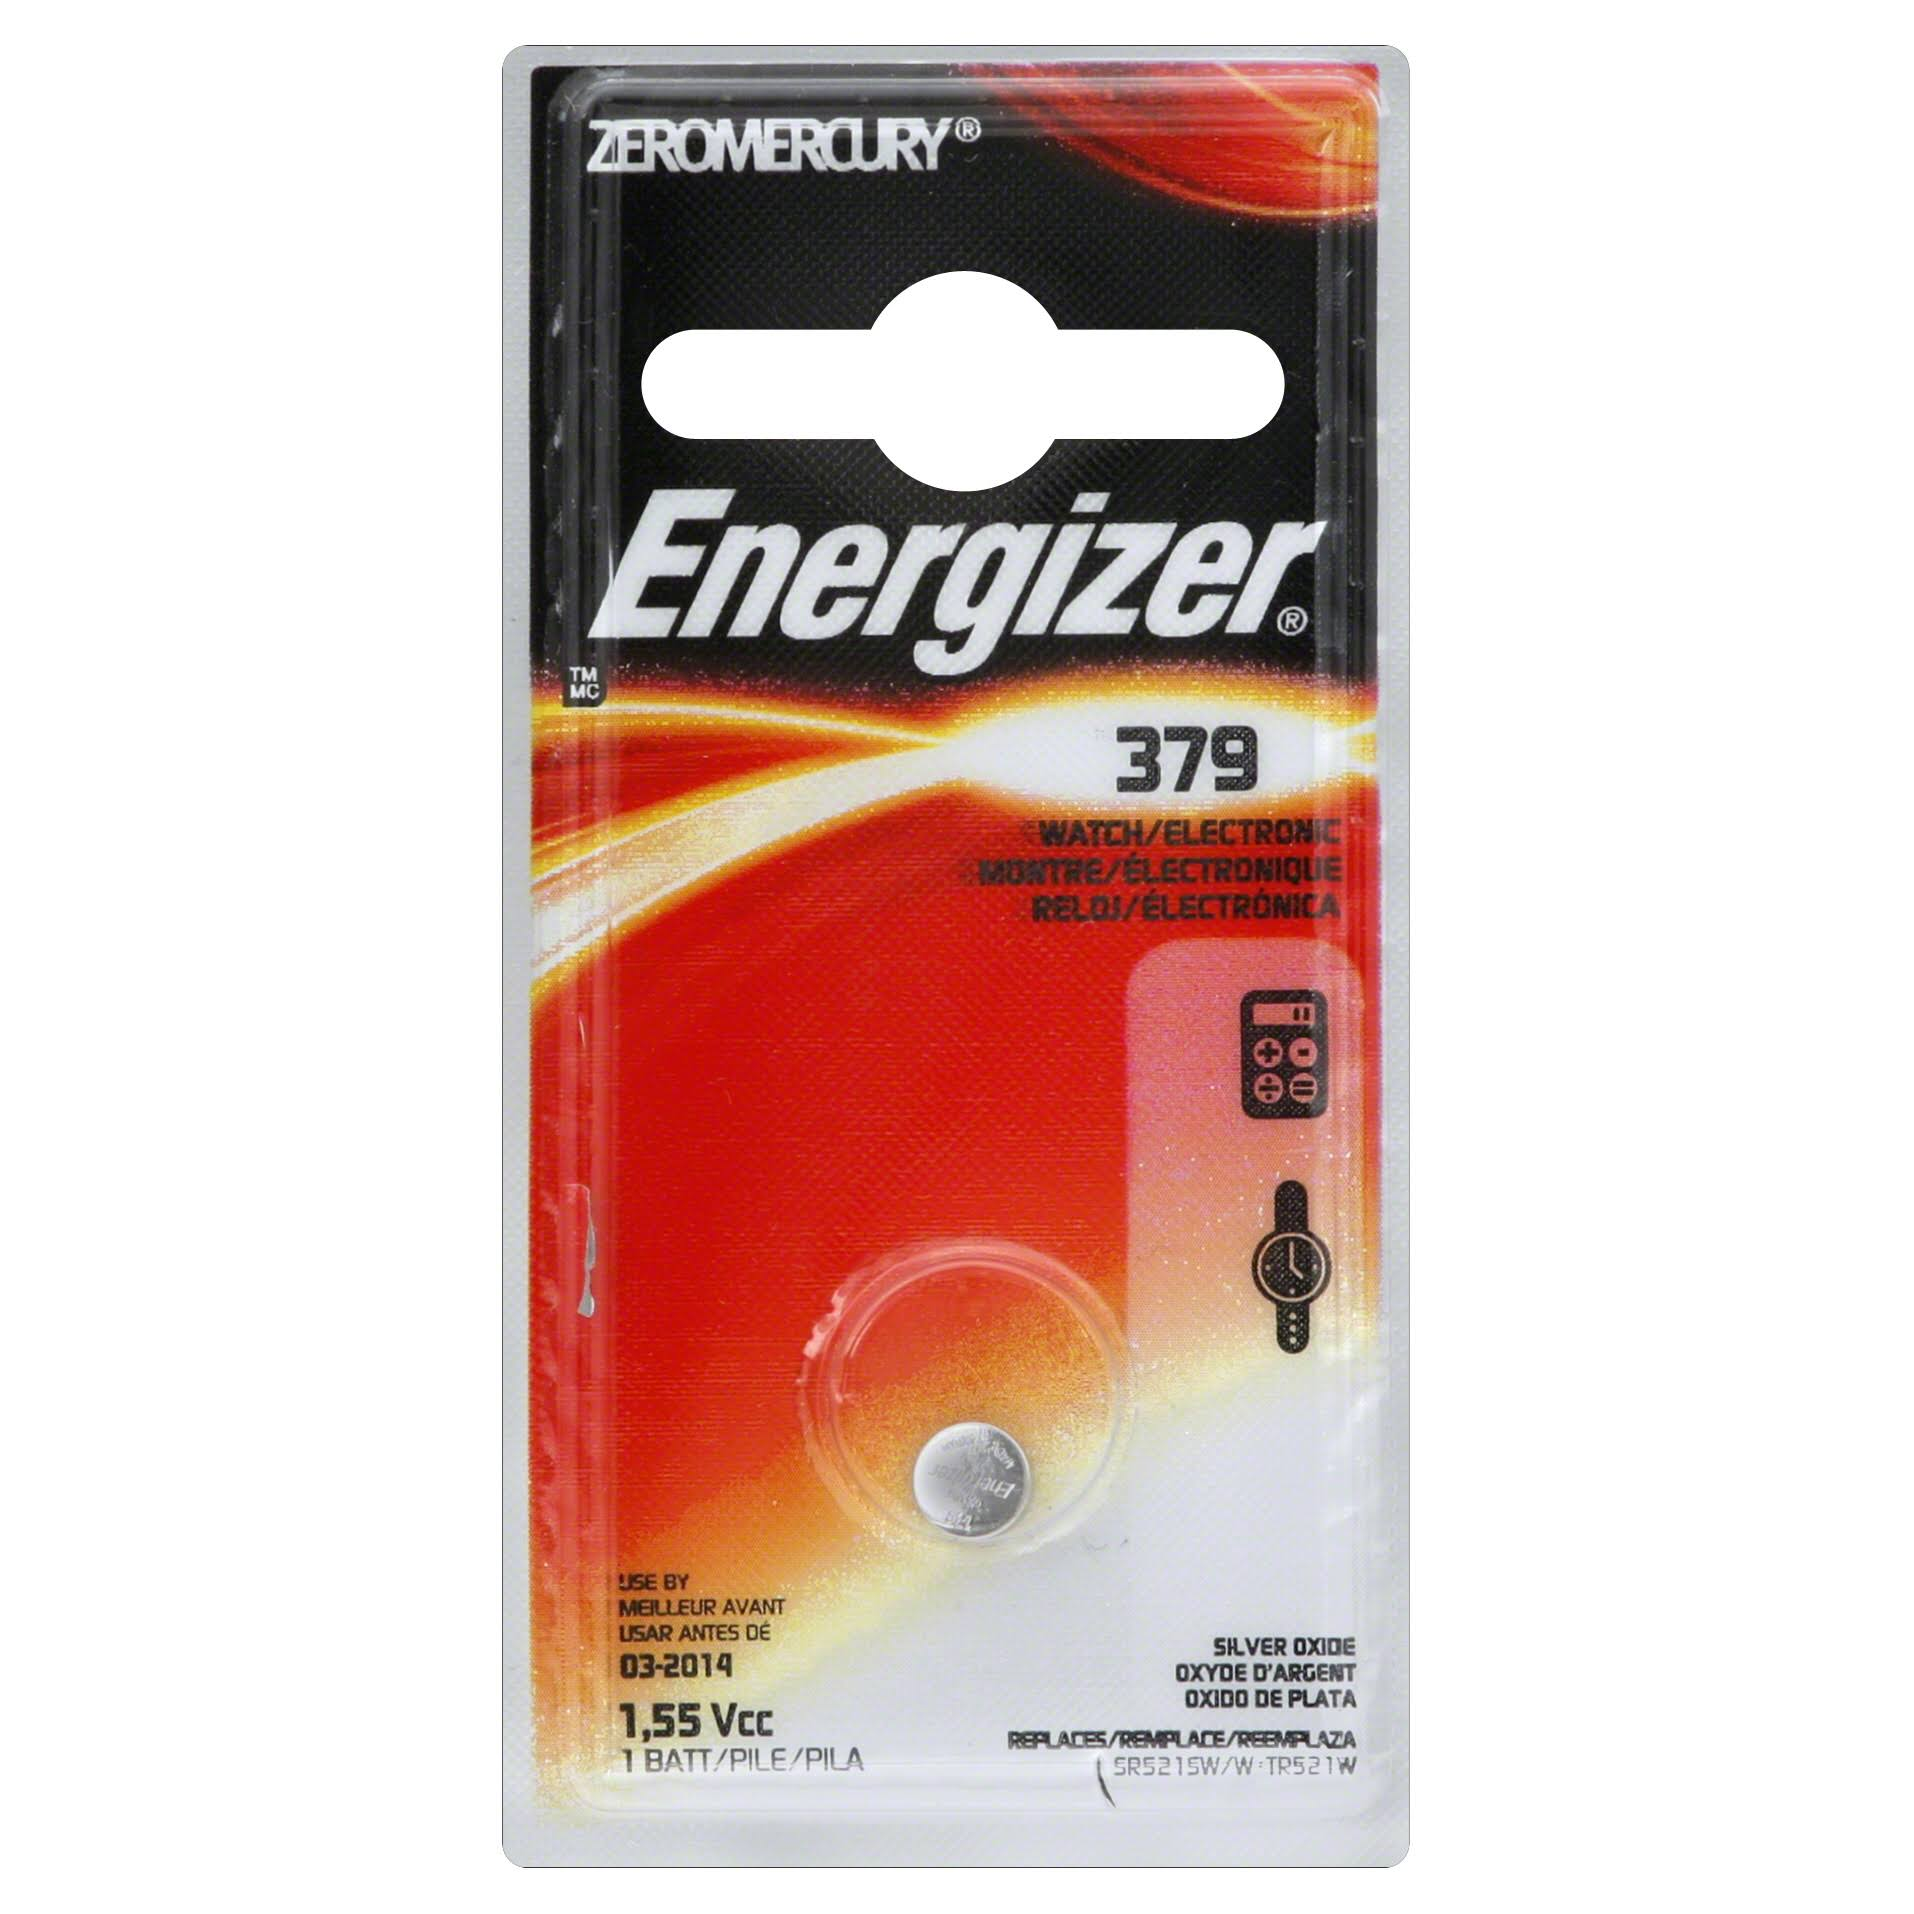 Energizer Zero Mercury Electronic Battery - 1pc